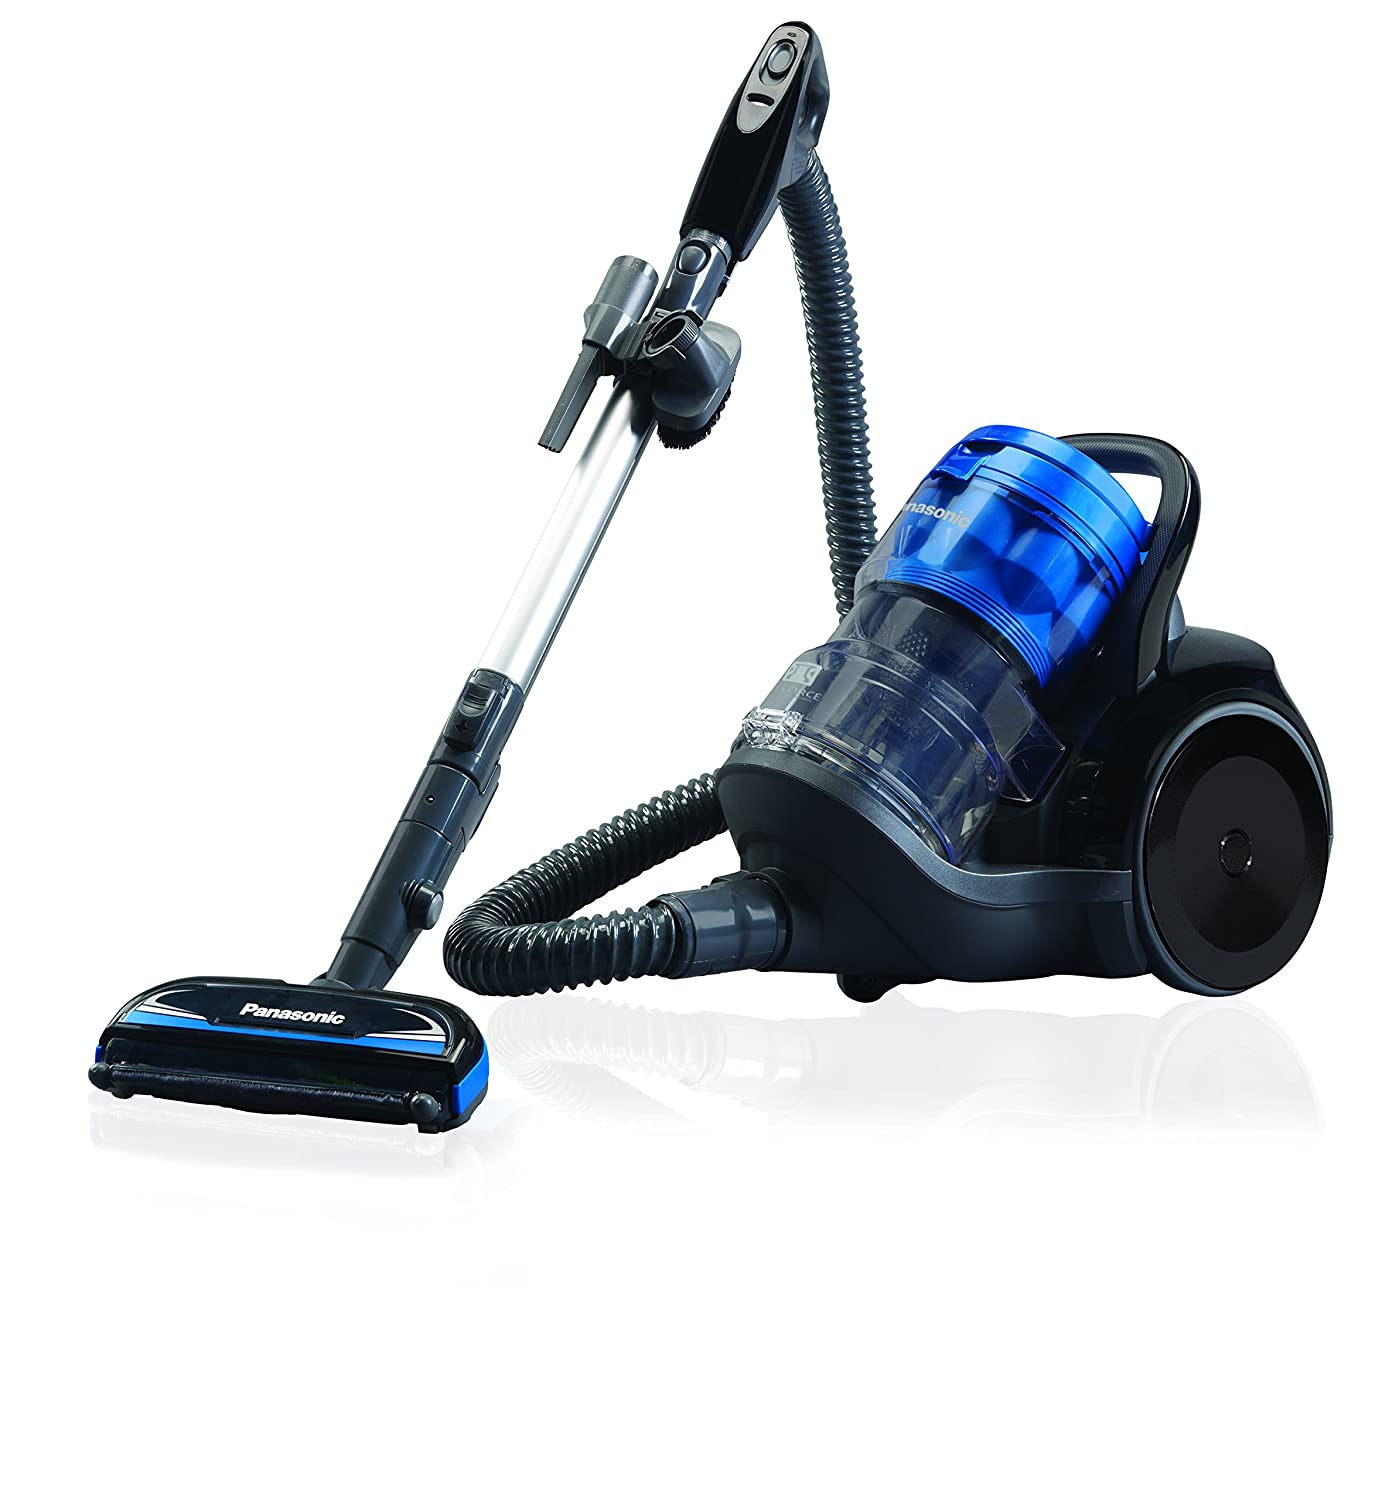 Panasonic MC-CL943 JETFORCE Mult-Surface Bagless Canister Vacuum Cleaner - Corded